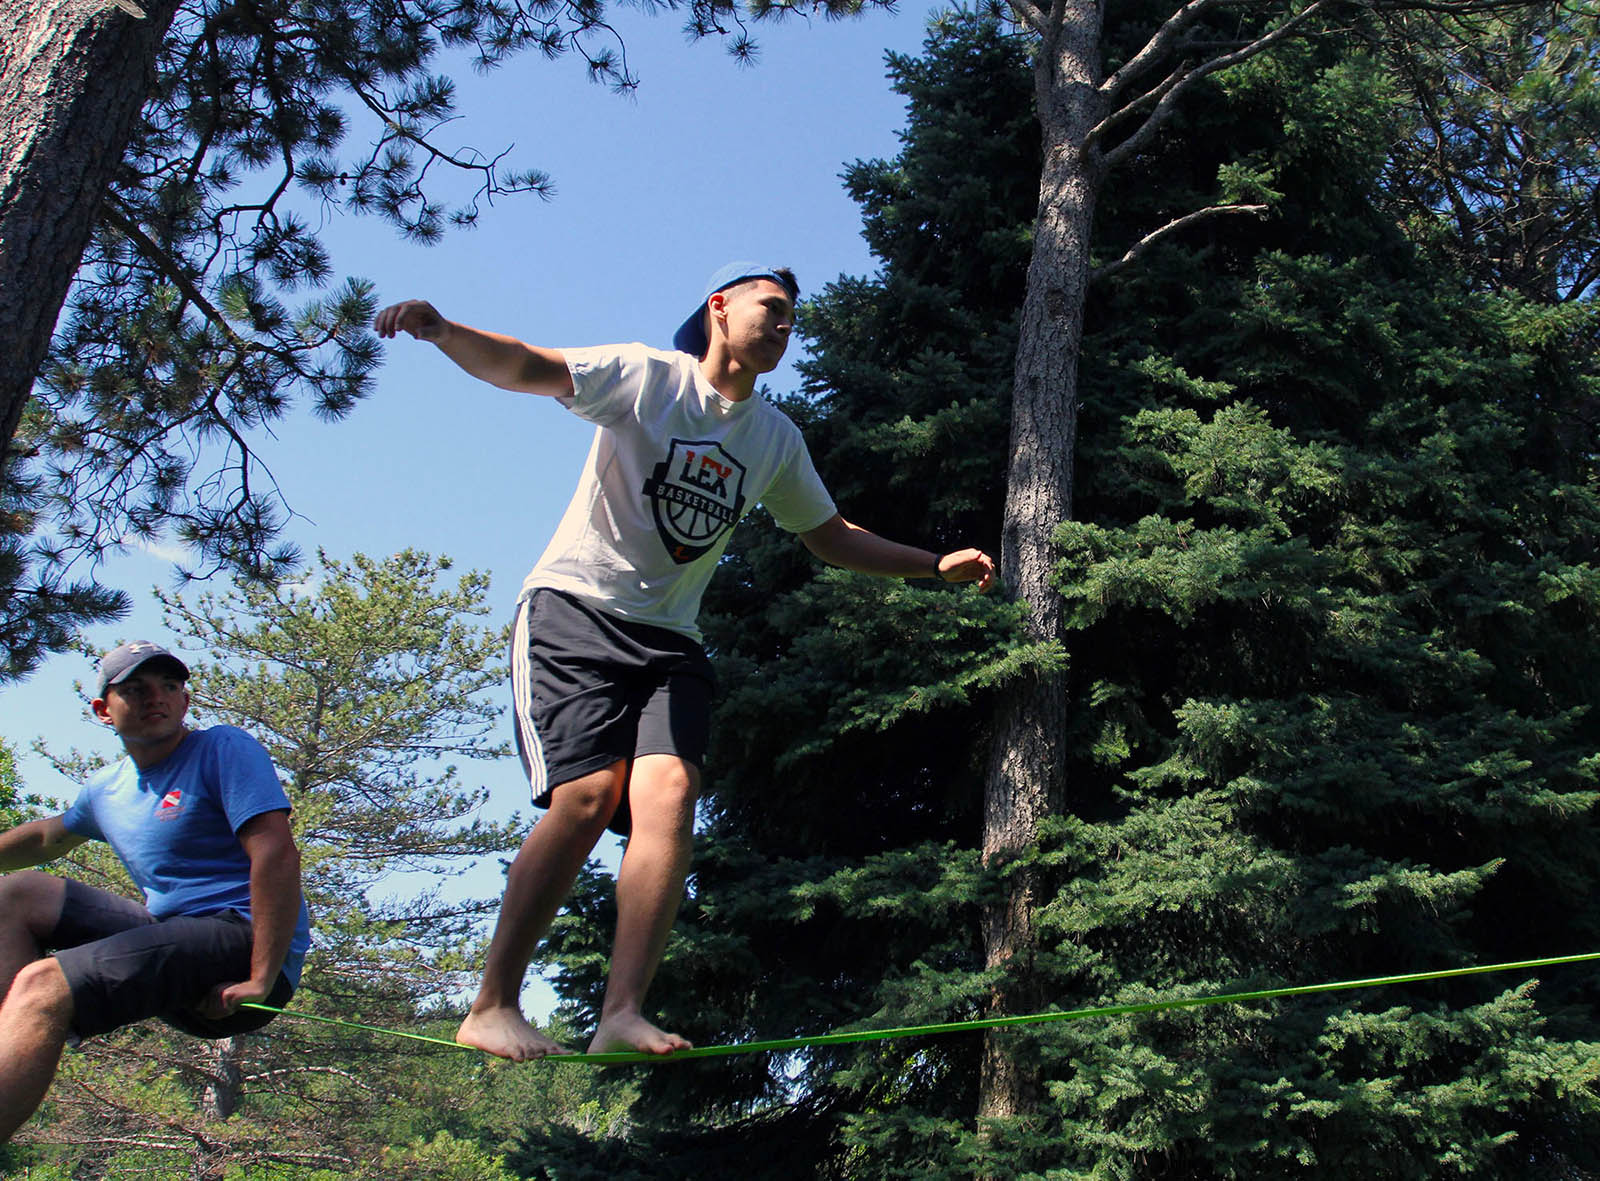 Isaac McDowell of Lexington tests his balance on a slackline while UNK senior Connor Gosnell provides some coaching. Incoming UNK freshmen participated in a variety of team-building activities at the Nebraska National Forest near Halsey during the First Adventure summer camp. (Photo by Tyler Ellyson, UNK Communications)